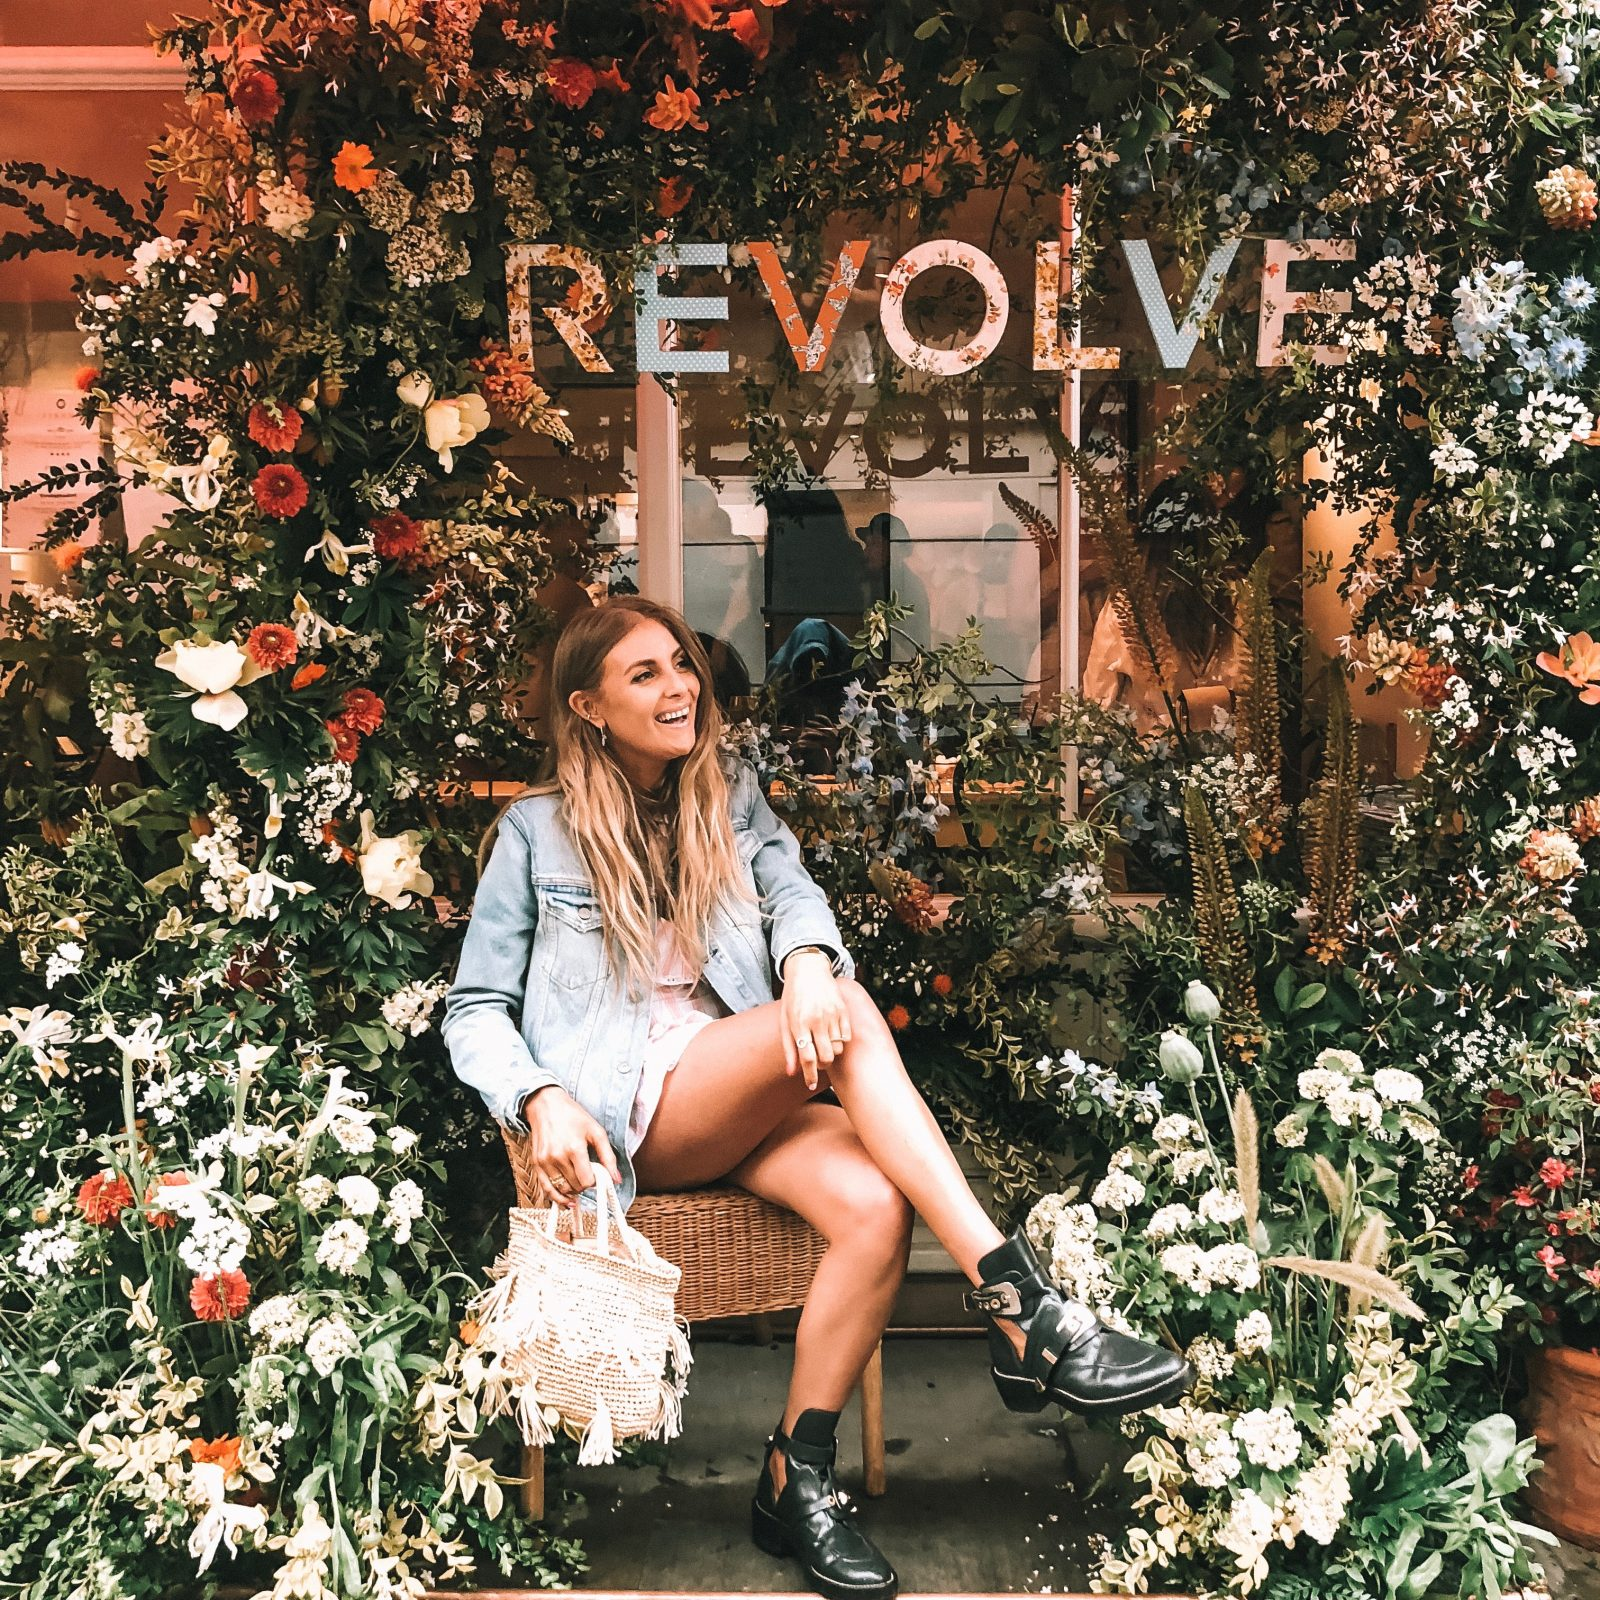 Revolve Takes London Revolve Floral Display